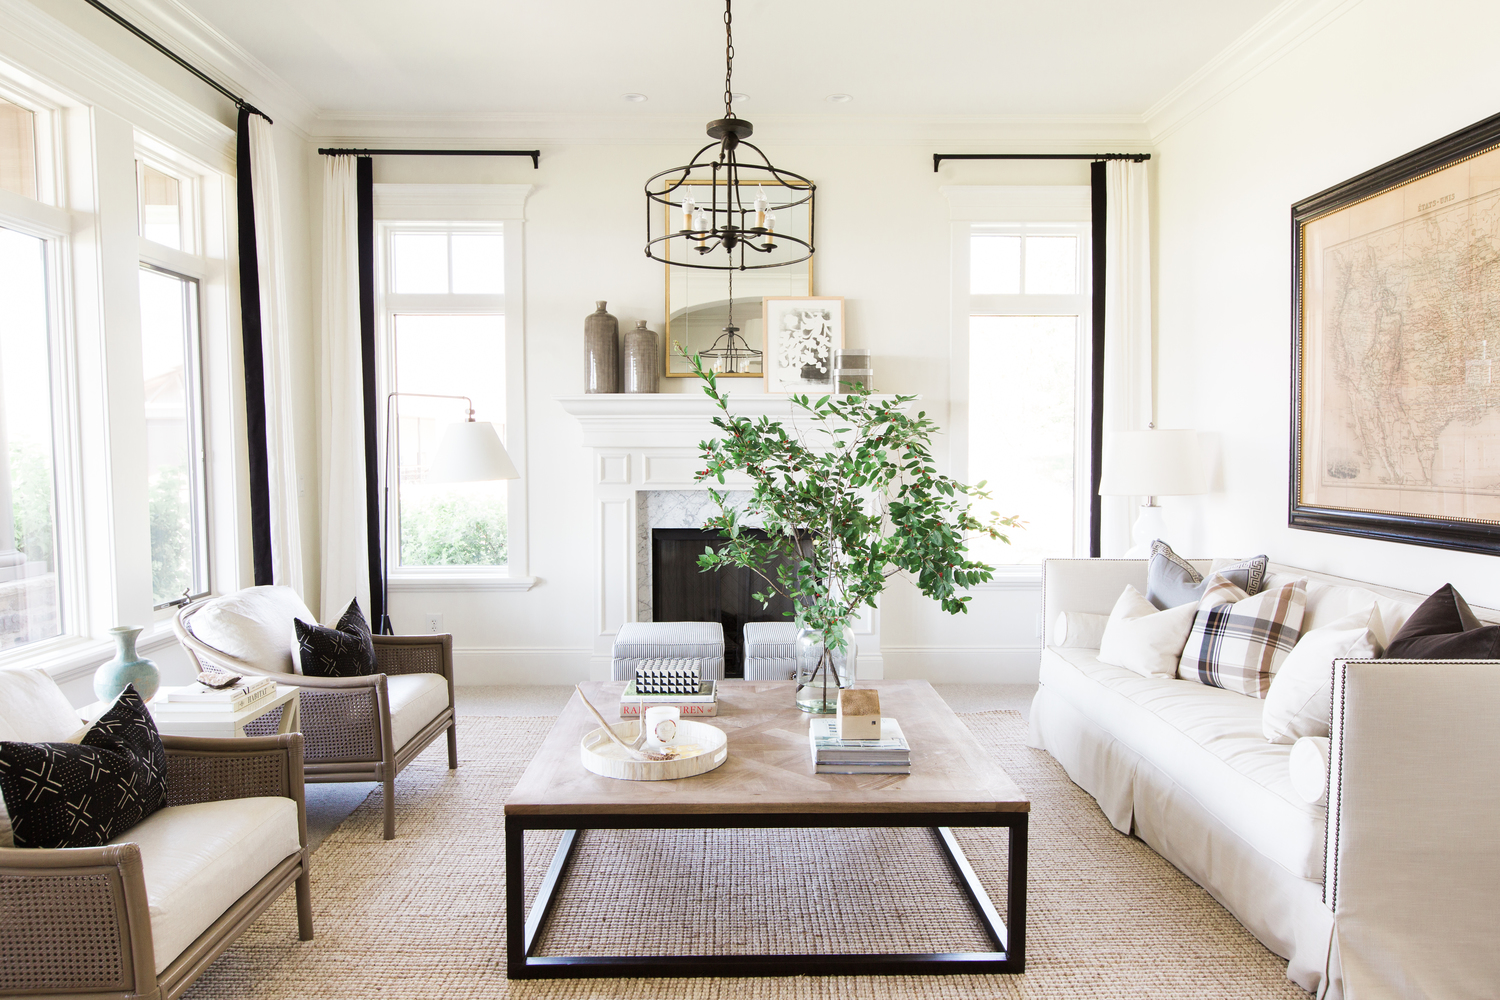 Neutral+textures+in+our+Mountainside+Remodel.+Full+tour+with+before_afters+on+the+blog!+||+Studio+McGee.jpeg